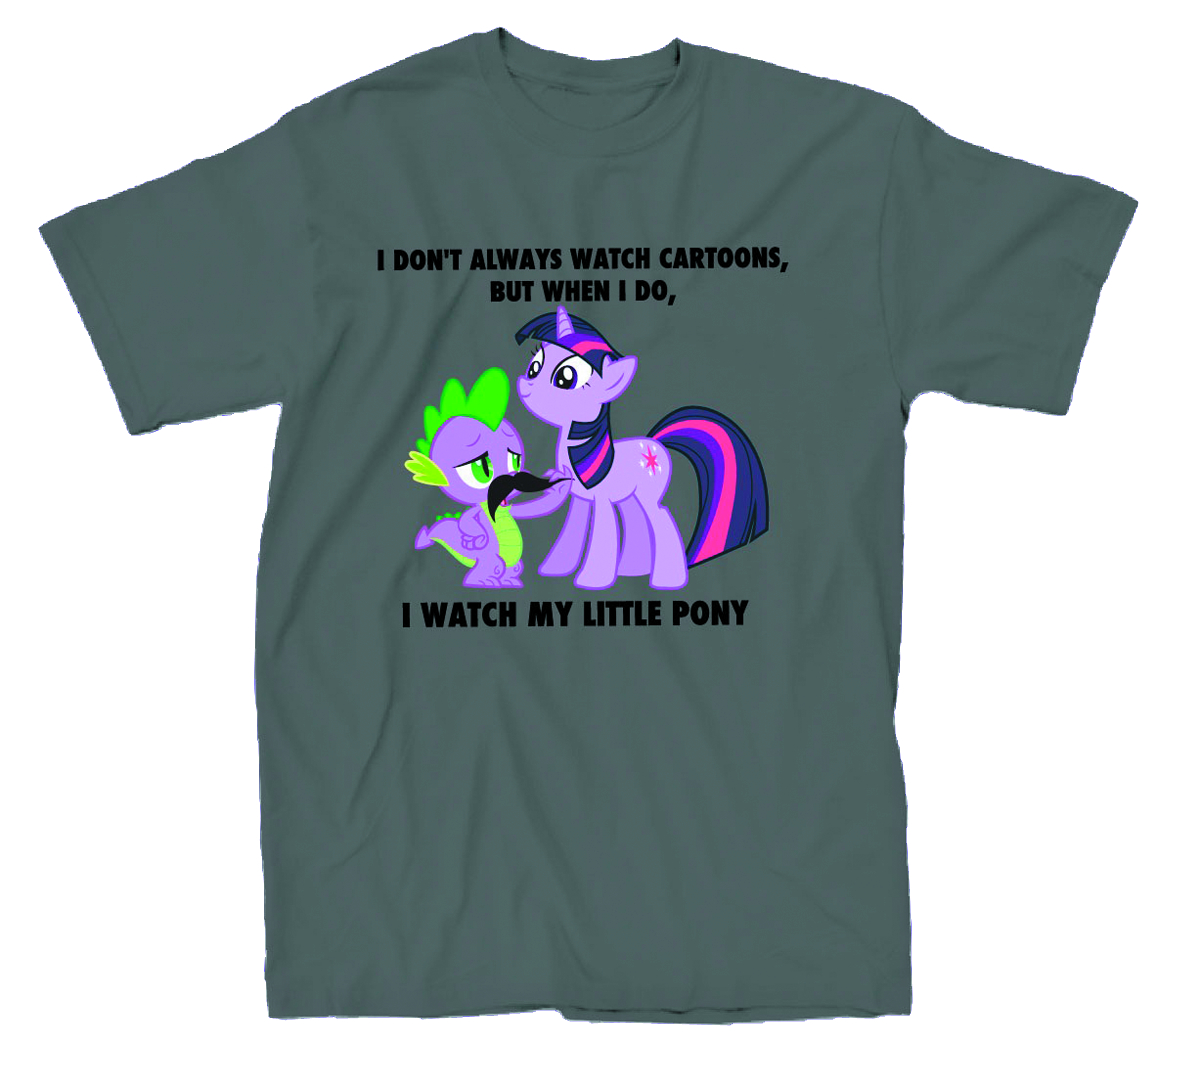 MY LITTLE PONY I WATCH MLP CHARCOAL PX T/S XL